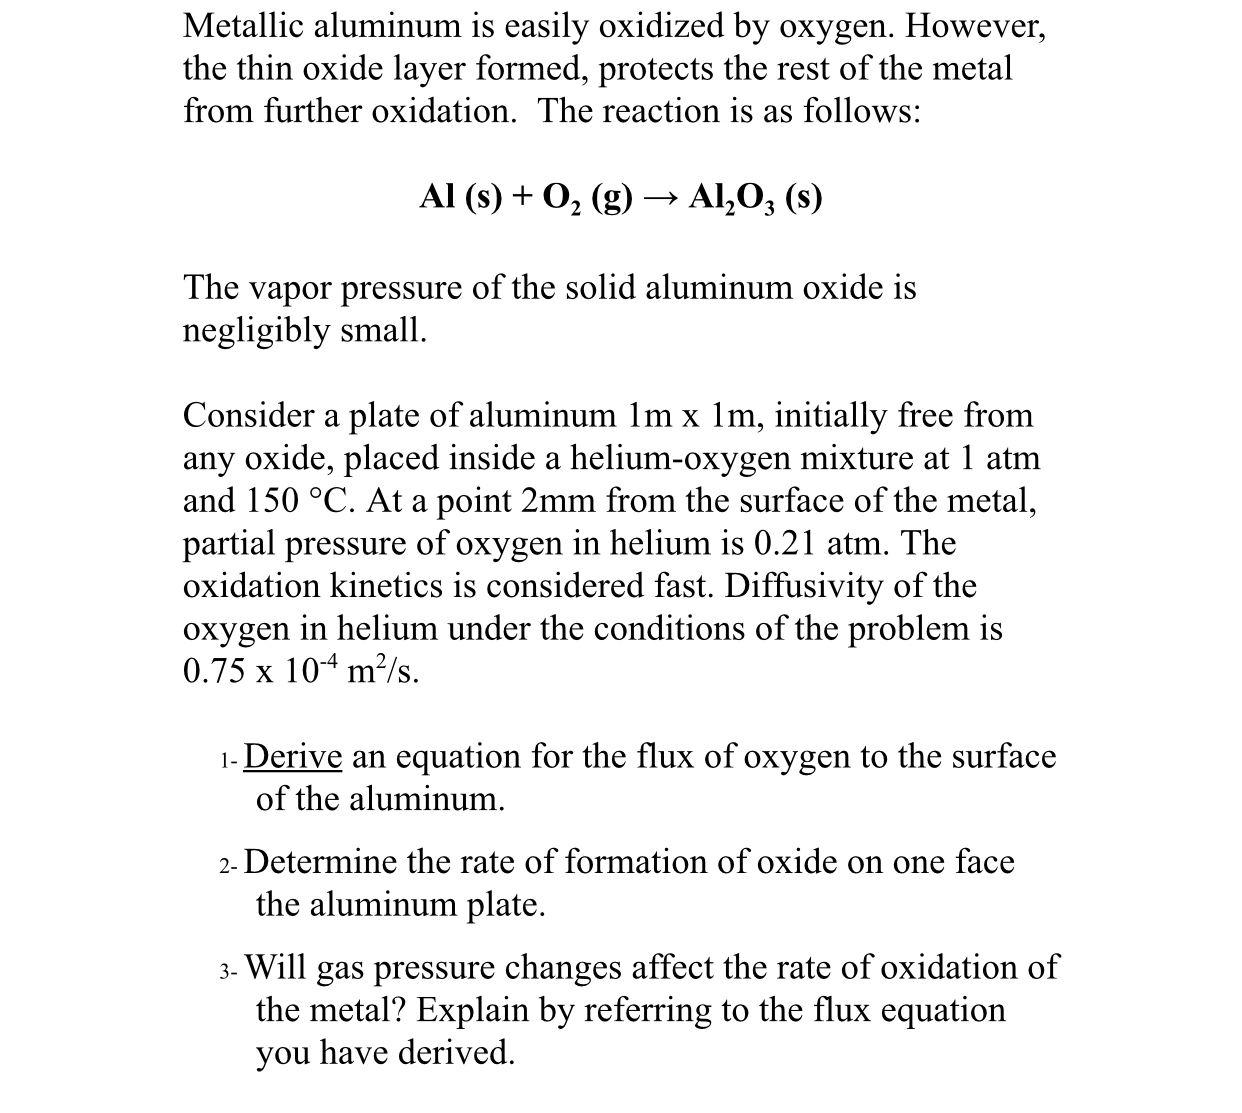 Metallic aluminum is easily oxidized by oxygen. However, the thin oxide layer formed, protects the rest of the metal from further oxidation. The reaction is as follows: Al (s)02 (g) > Al203 (s) The vapor pressure of the solid aluminum oxide is negligibly small Consider a plate of aluminum 1m x 1m, initially free from any oxide, placed inside a helium-oxygen mixture at 1 atm and 150 °C. At a point 2mm from the surface of the metal, partial pressure of oxygen in helium is 0.21 atm. The oxidation kinetics is considered fast. Diffusivity of the oxygen in helium under the conditions of the problem is 0.75 x 104 m2/s 1- Derive an equation for the flux of oxygen to the surface of the aluminum 2- Determine the rate of formation of oxide on one face the aluminum plate 3- Will gas pressure changes affect the rate of oxidation of the metal? Explain by referring to the flux equation you have derived